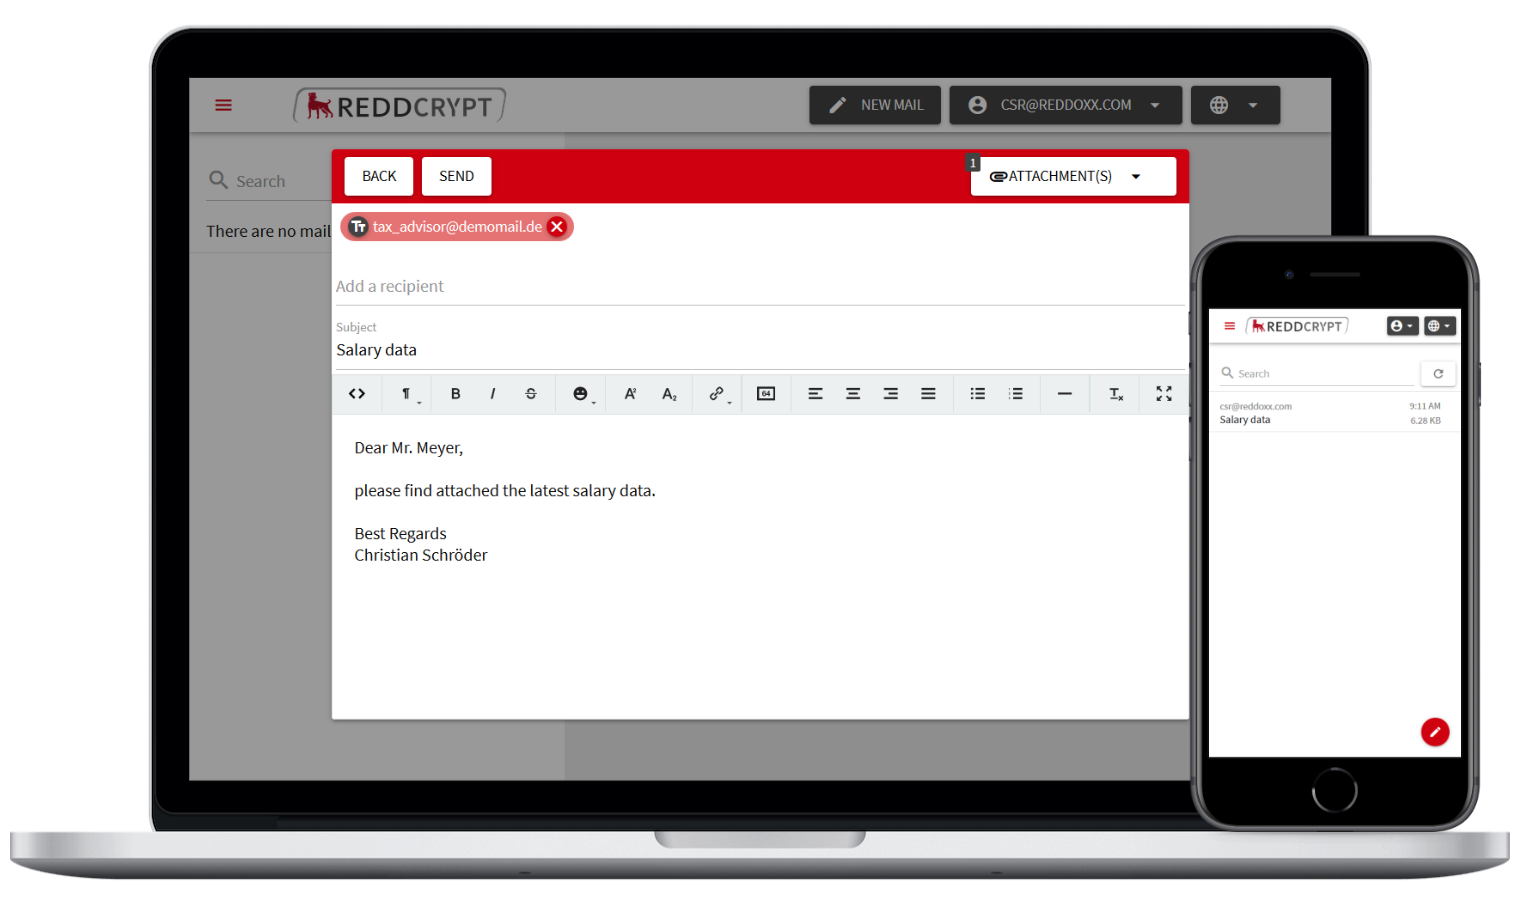 With the REDDCRYPT web app anyone can encrypt and decrypt their mails free of charge